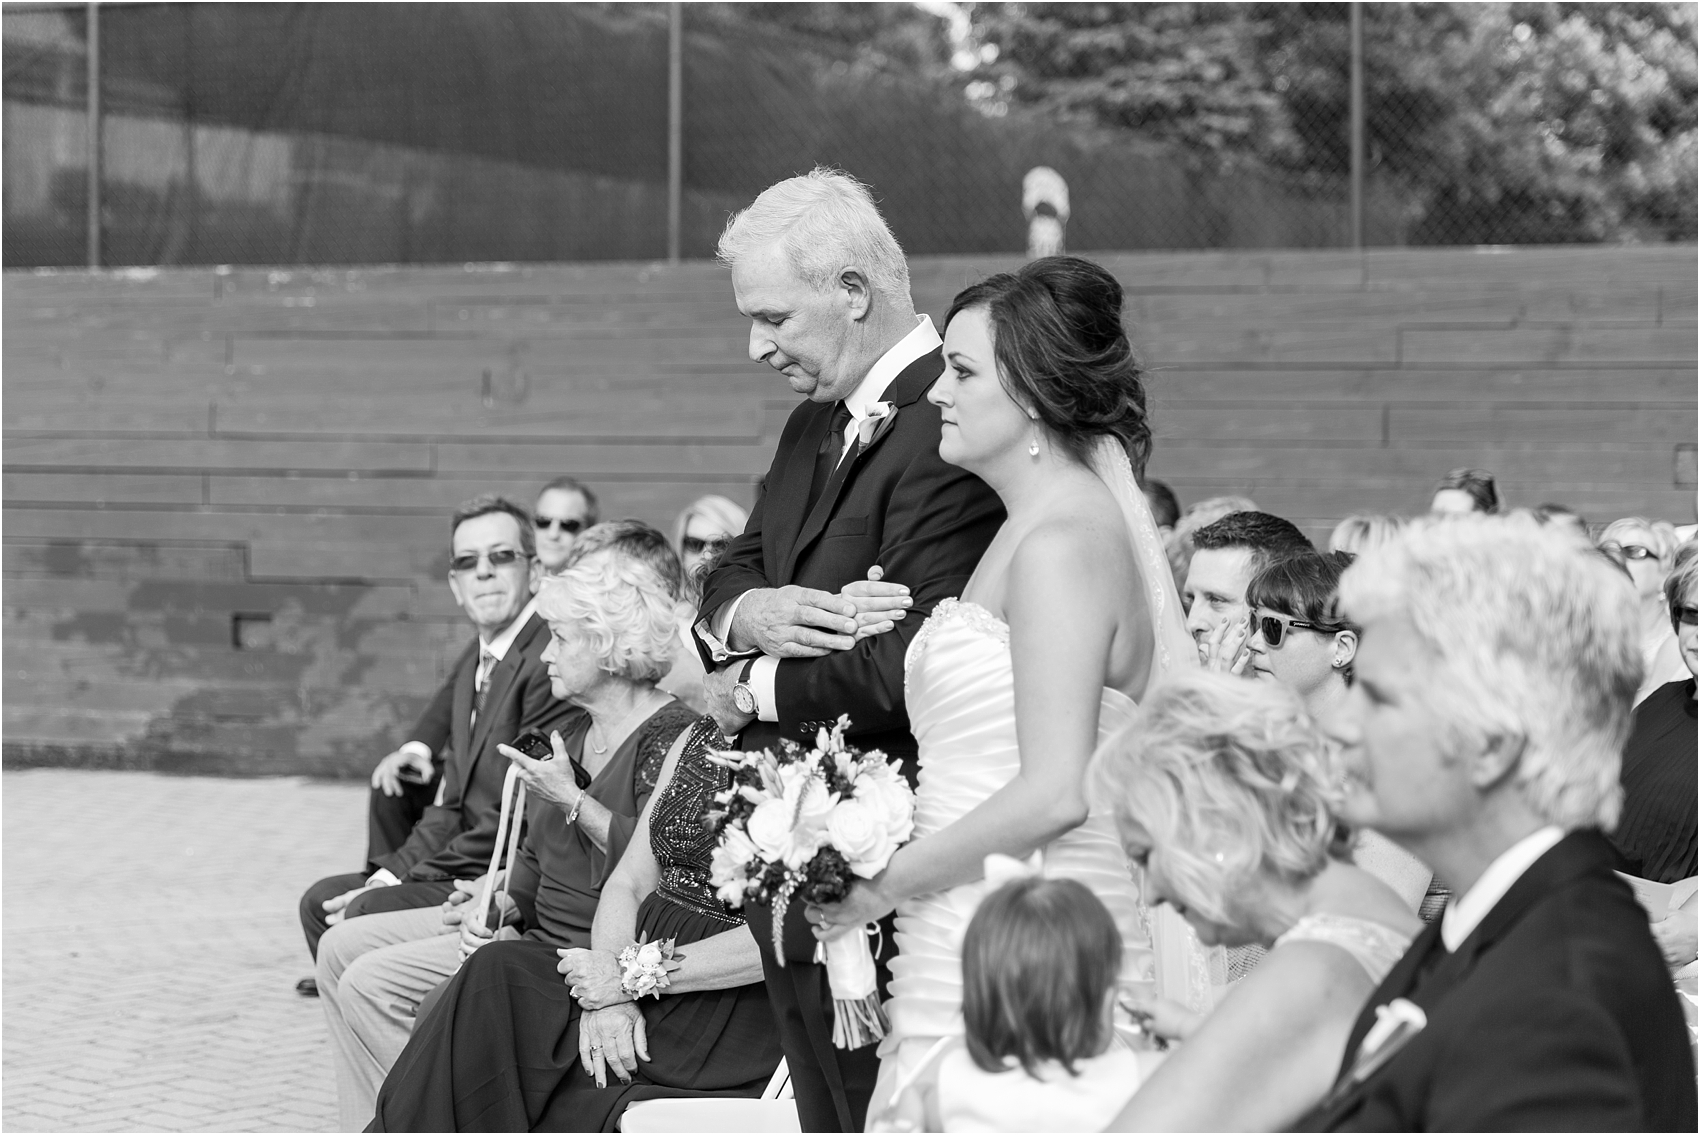 classic-wedding-photos-at-great-oaks-country-club-in-rochester-hills-mi-by-courtney-carolyn-photography_0069.jpg